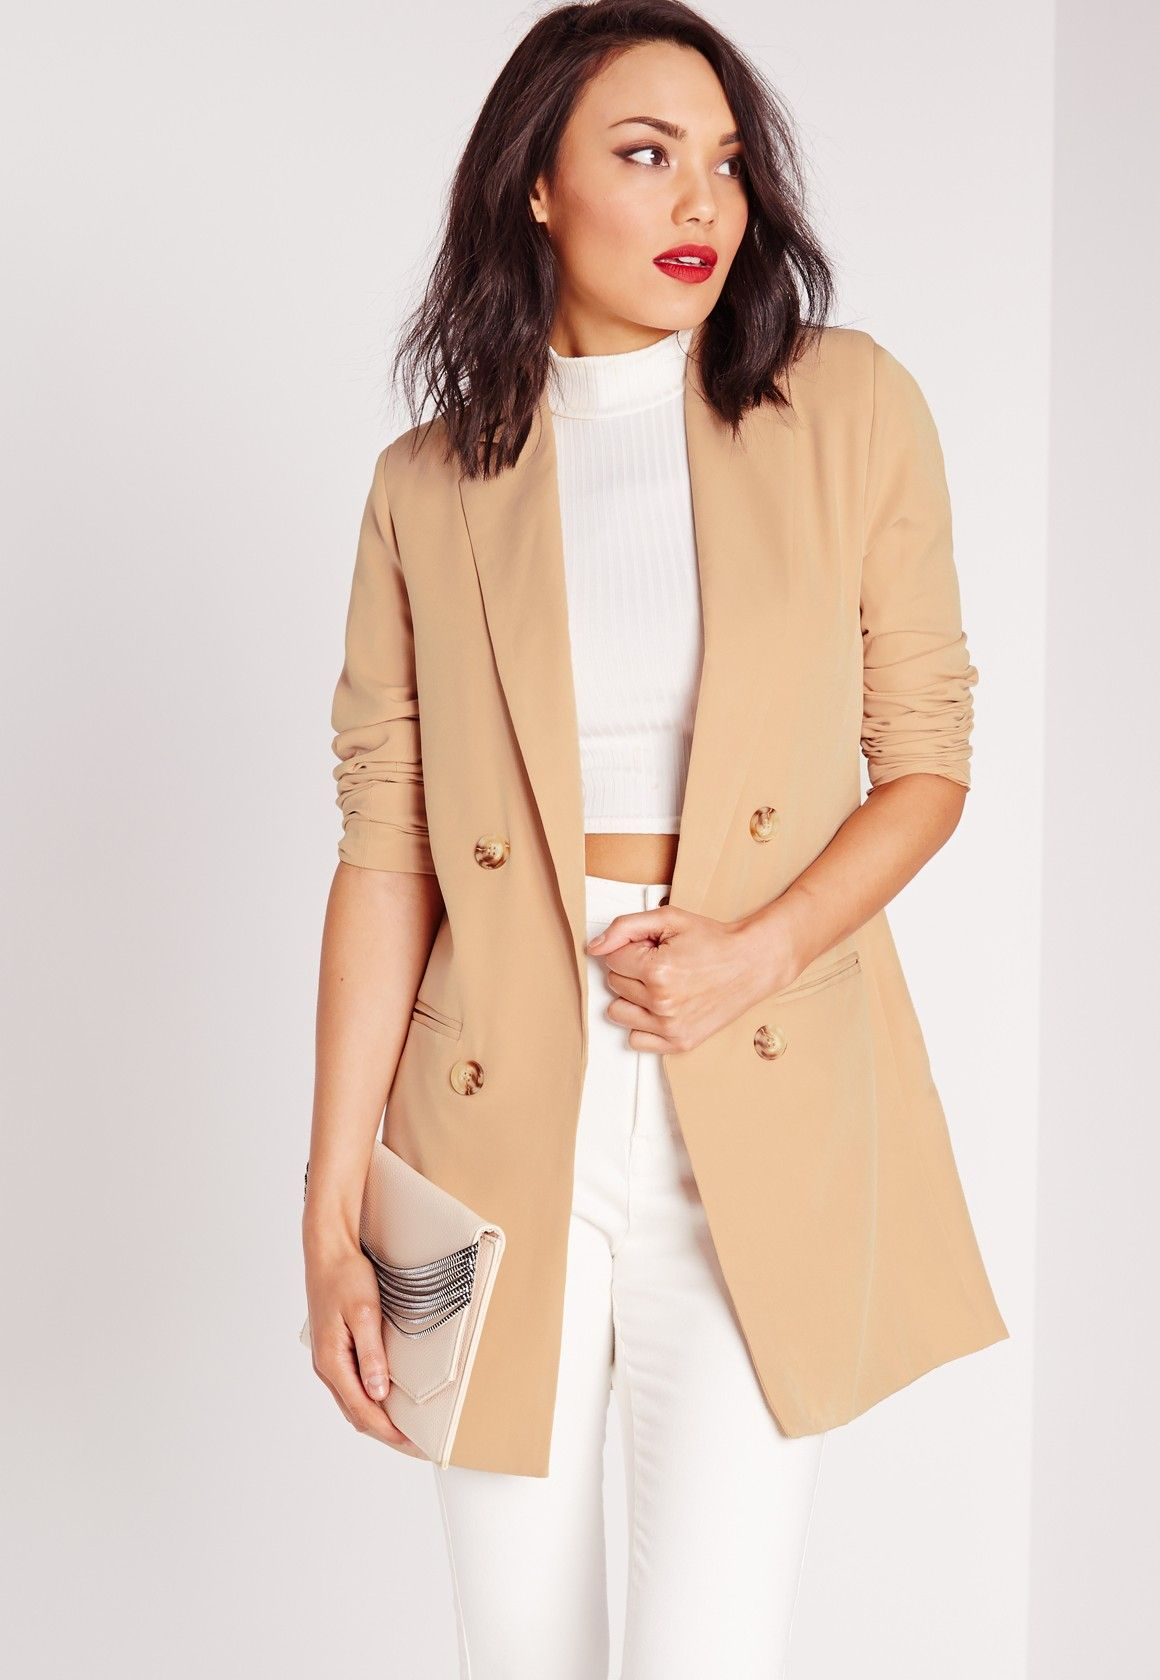 8016a28320b2 Missguided - Double Breasted Blazer In Camel - $20 | Women's Suits ...